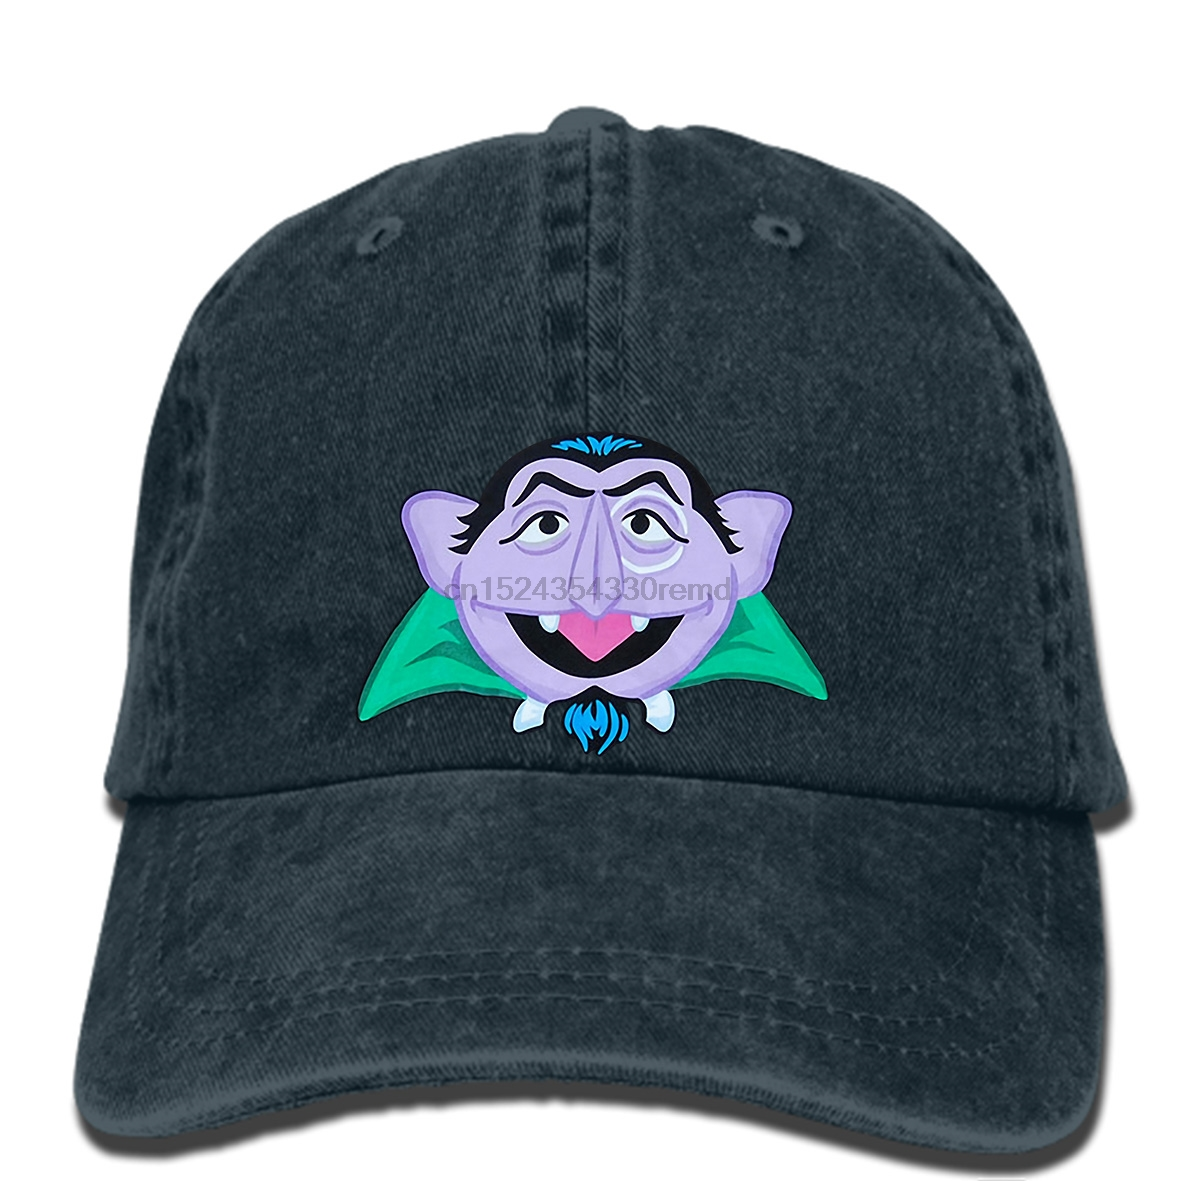 Us 9 9 Hip Hop Baseball Caps Funny Hat Men Novelty Women Sesame Street Count Von Count Face Adult Cap In Men S Baseball Caps From Apparel